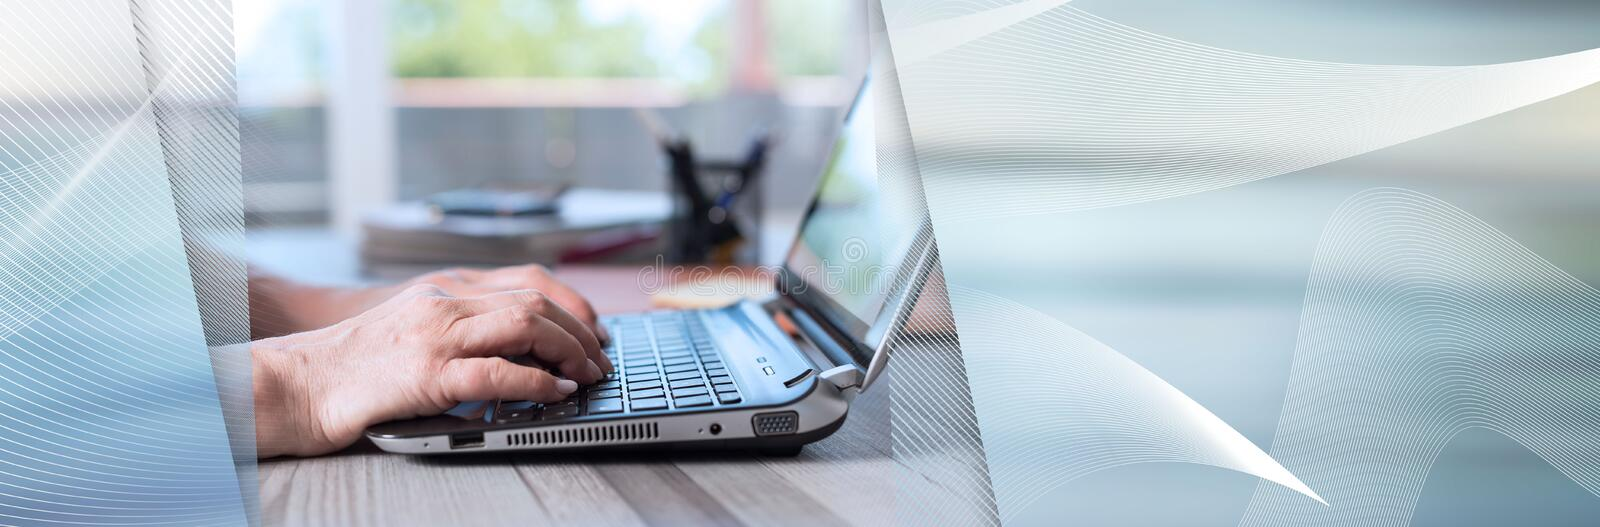 Female hands using a laptop. panoramic banner. Female hands using a laptop in office. panoramic banner royalty free stock photos